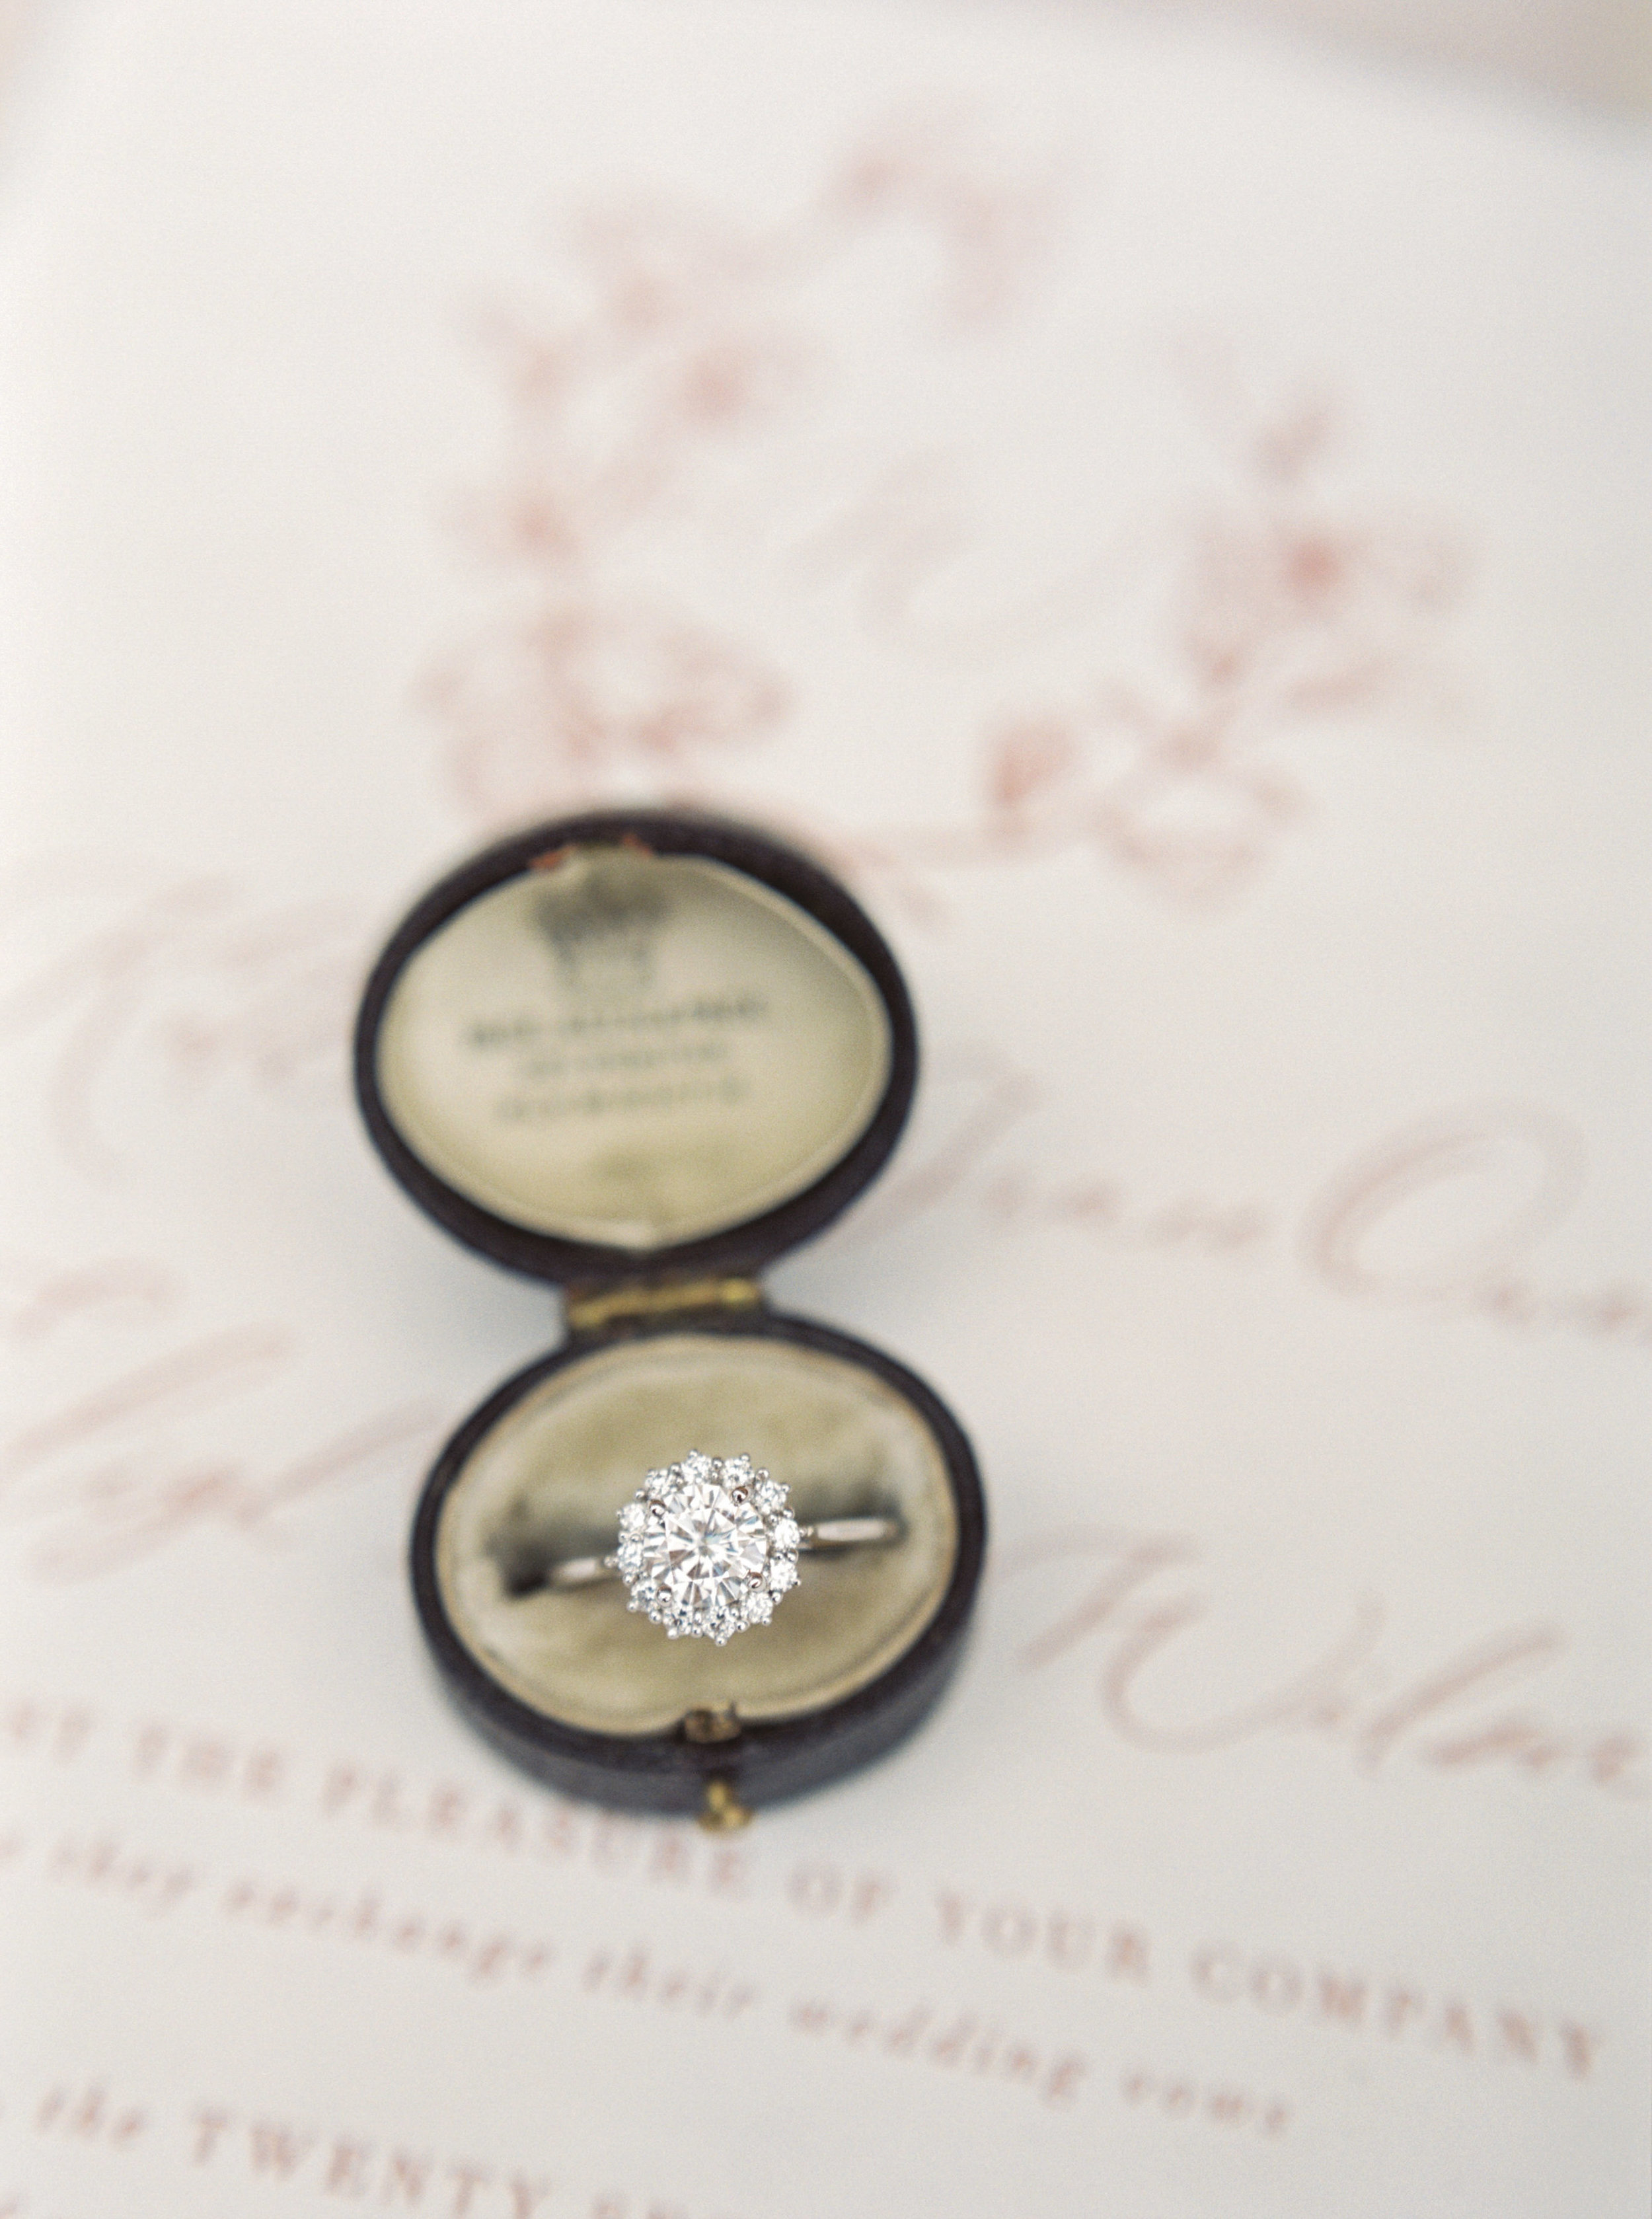 Fine Art Wedding Inspiration - Ring Styling